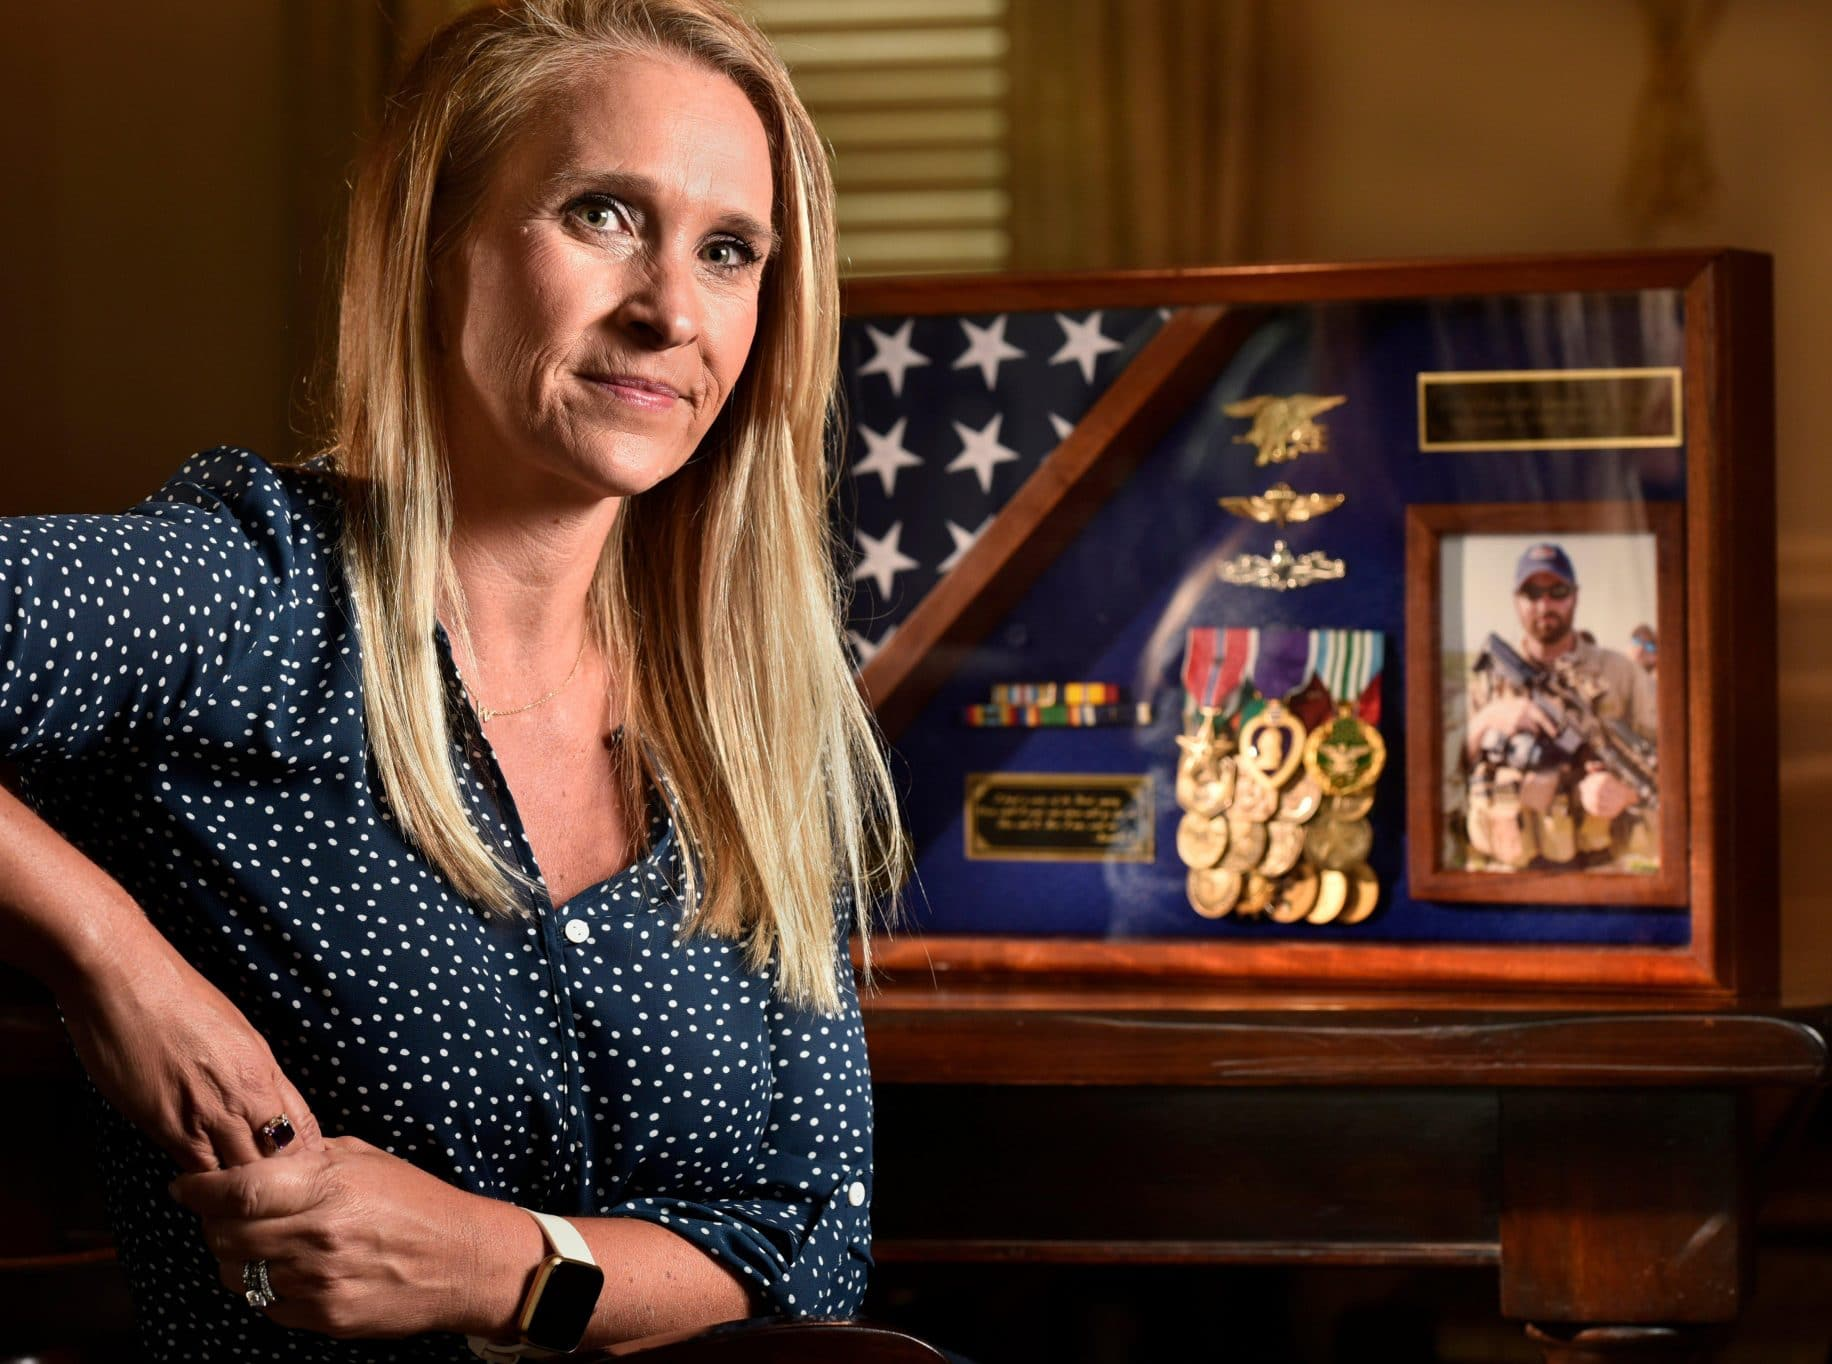 Widow of Navy SEAL killed in Afghanistan 15 years ago tells story of grief and acceptance